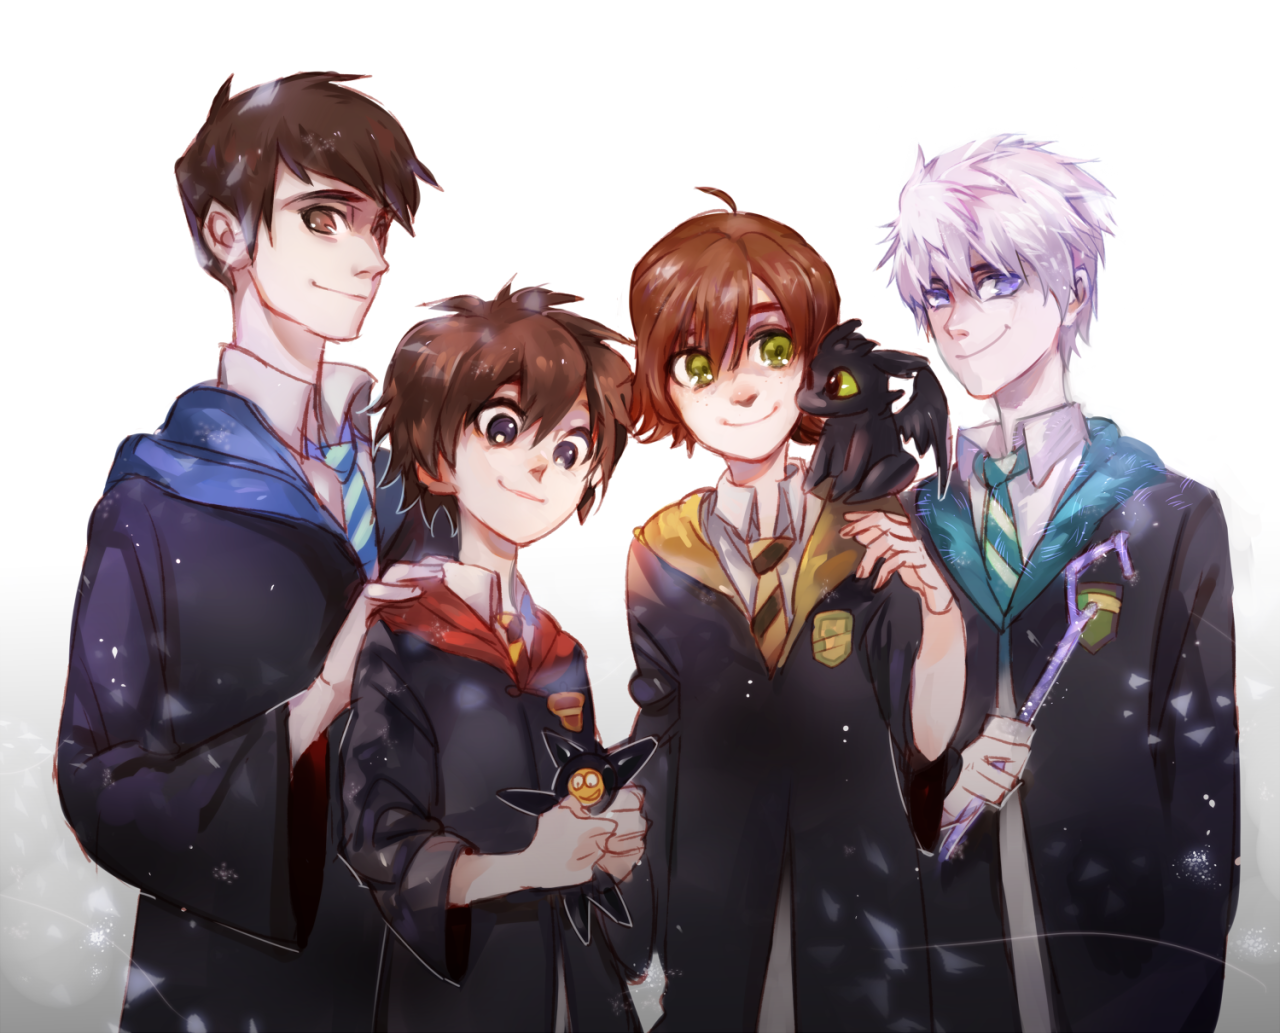 ROTBTD: my favorite Characters in Hogwarts! (ღ˘⌣˘ღ)I have already imagined a lot of Scene that they are together! the heart throbs, my babies <3